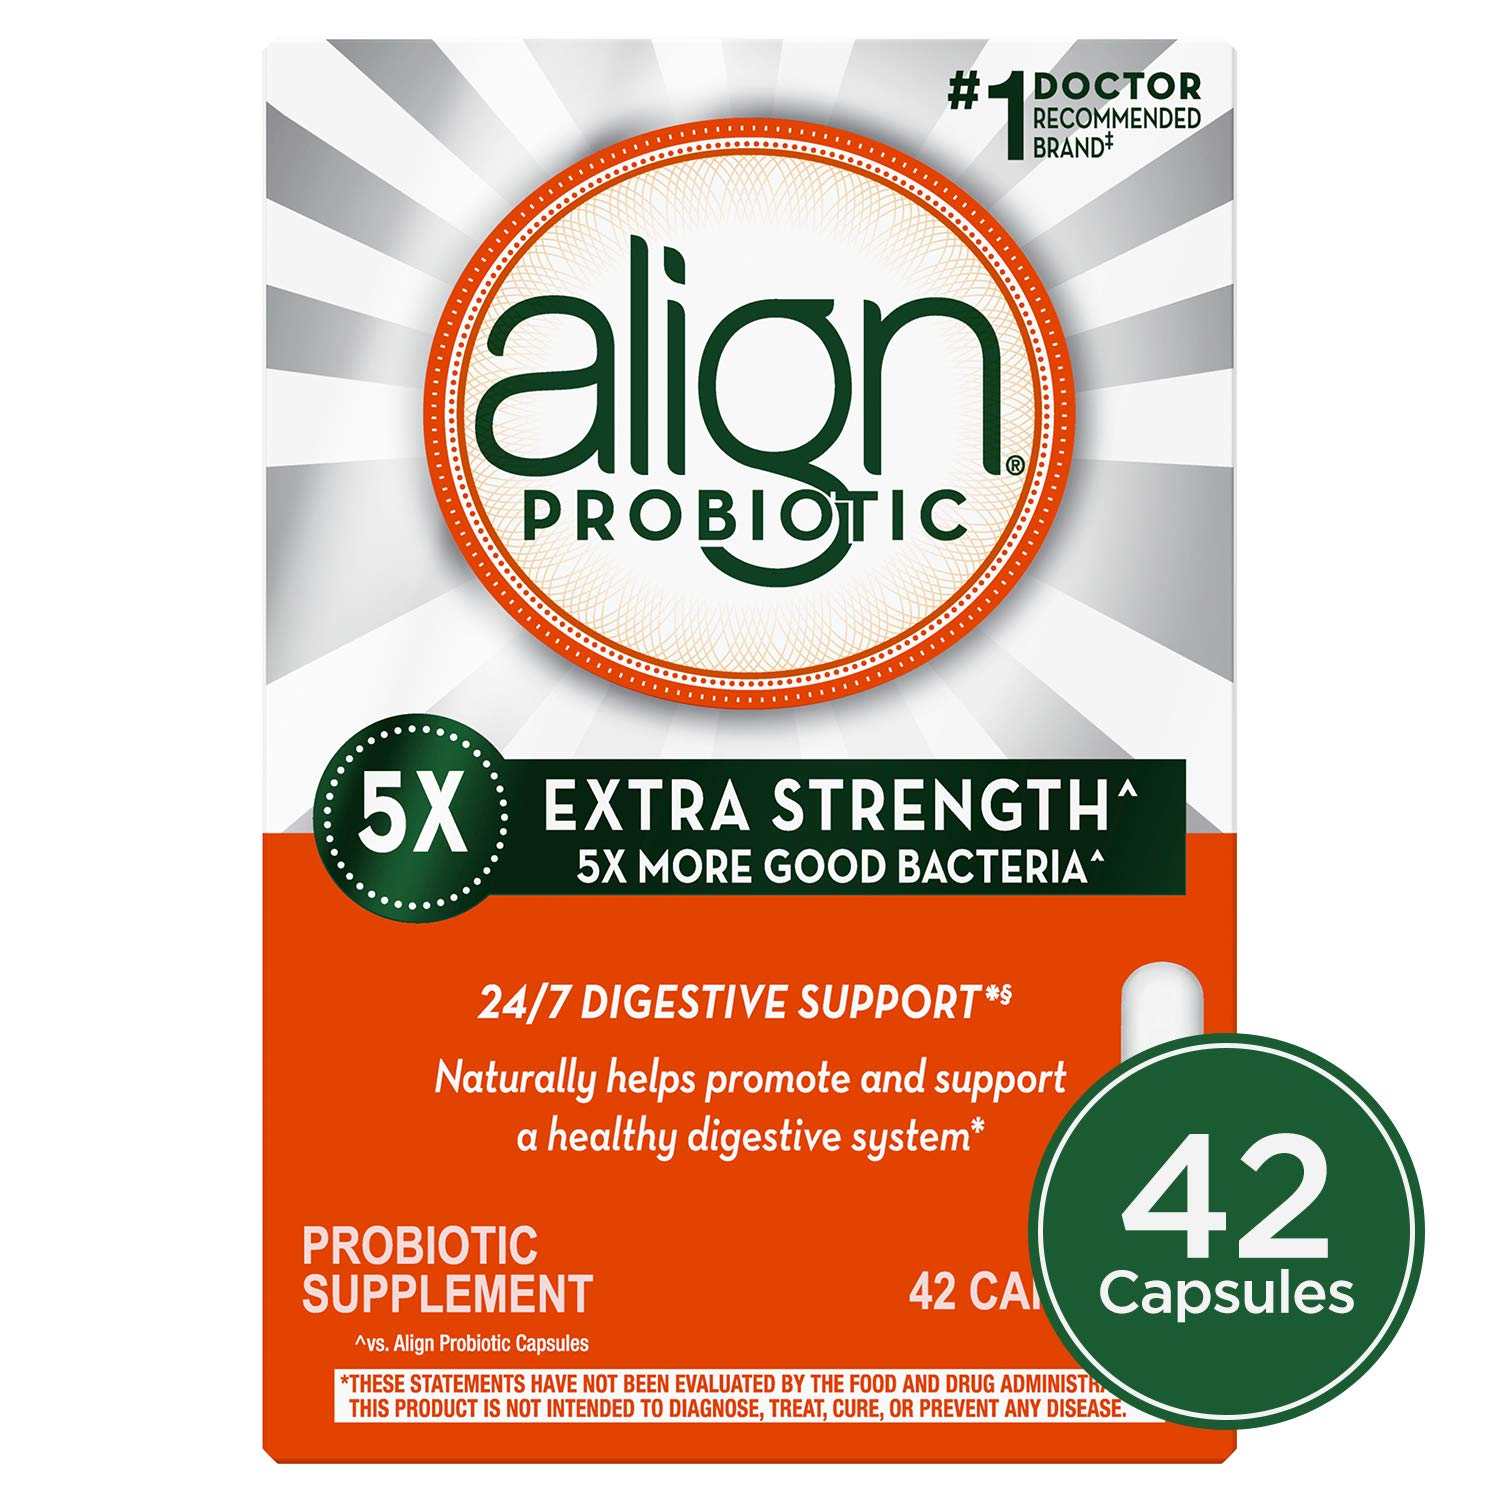 Align Extra Strength Probiotic, Probiotic Supplement for Digestive Health in Men and Women, 42 capsules, #1 Doctor Recommended Probiotics Brand (Packaging May Vary) by Align